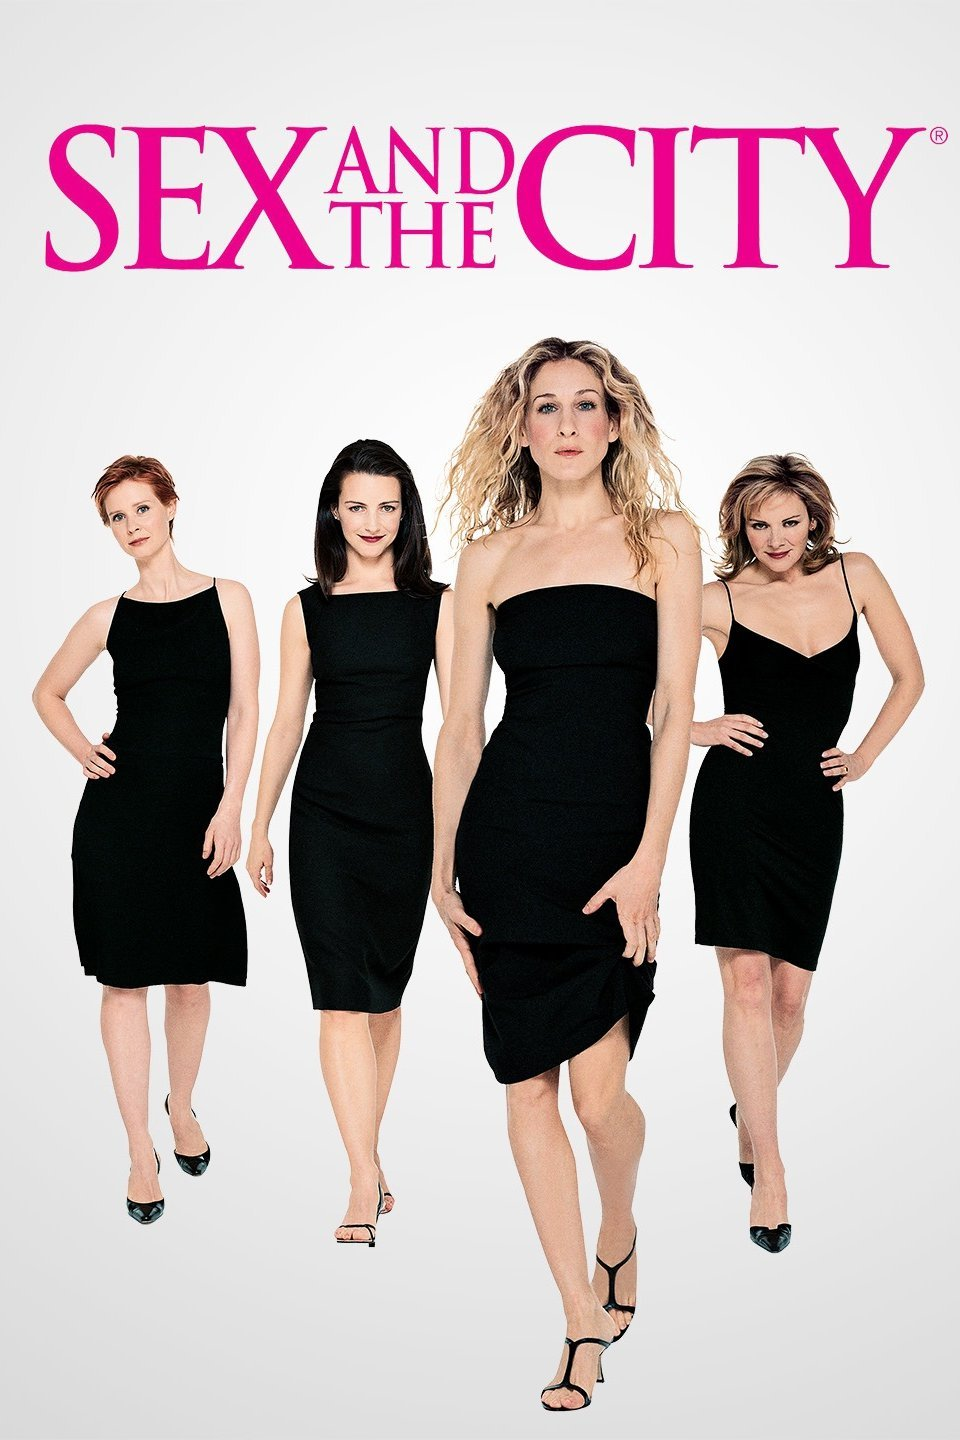 Sex and the city 1st episode